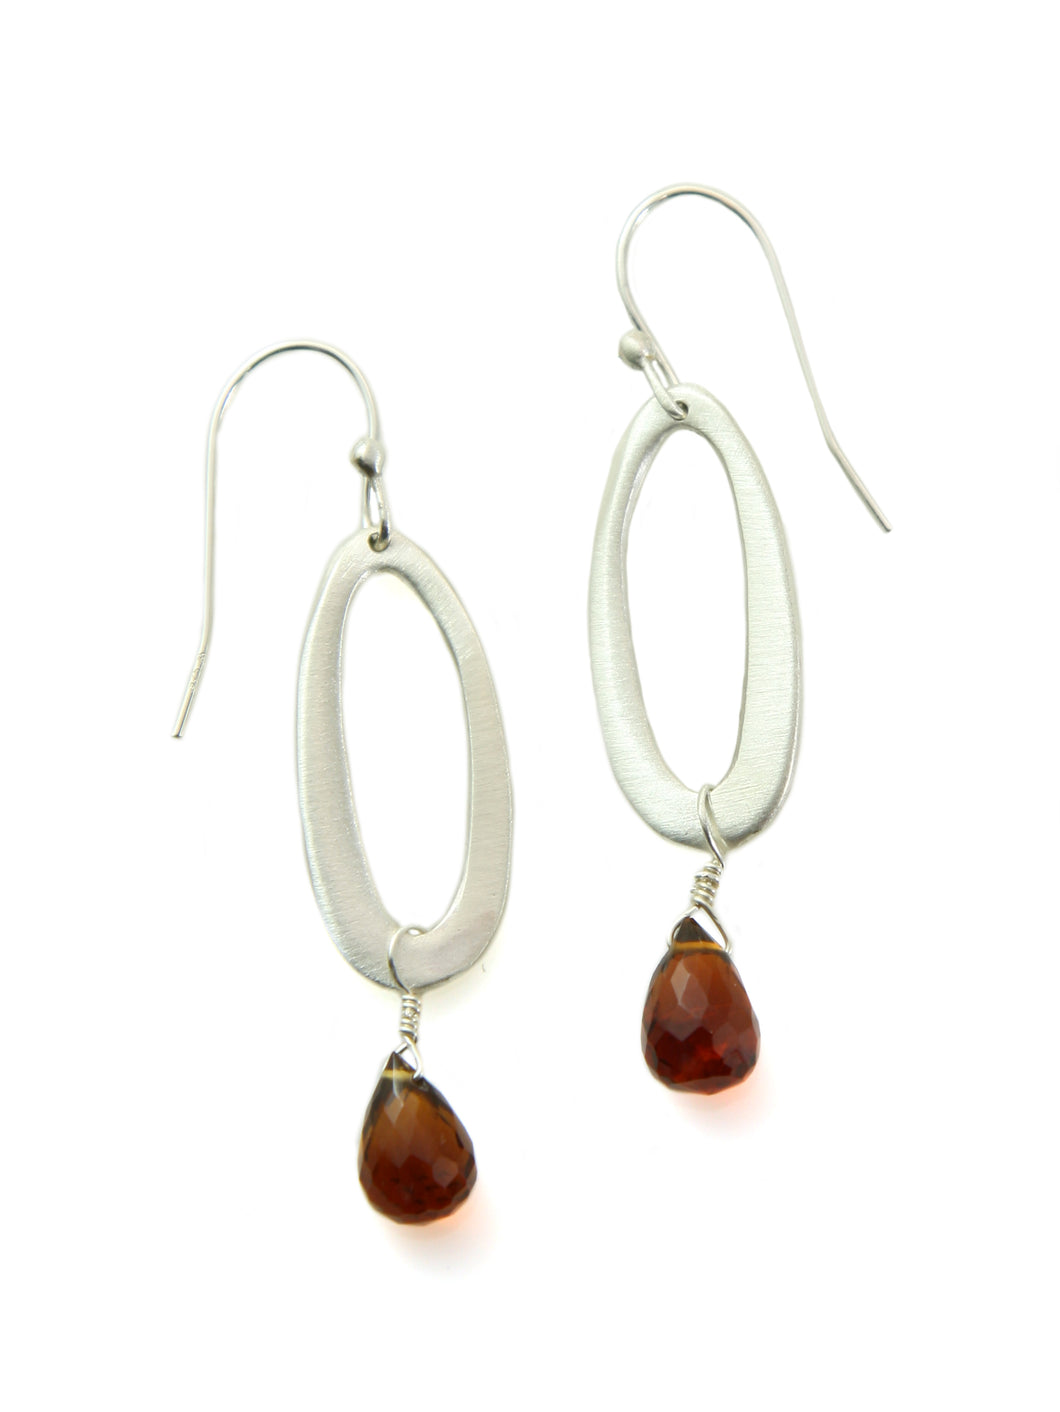 Philippa Roberts: Small oval w. garnet. silver earrings